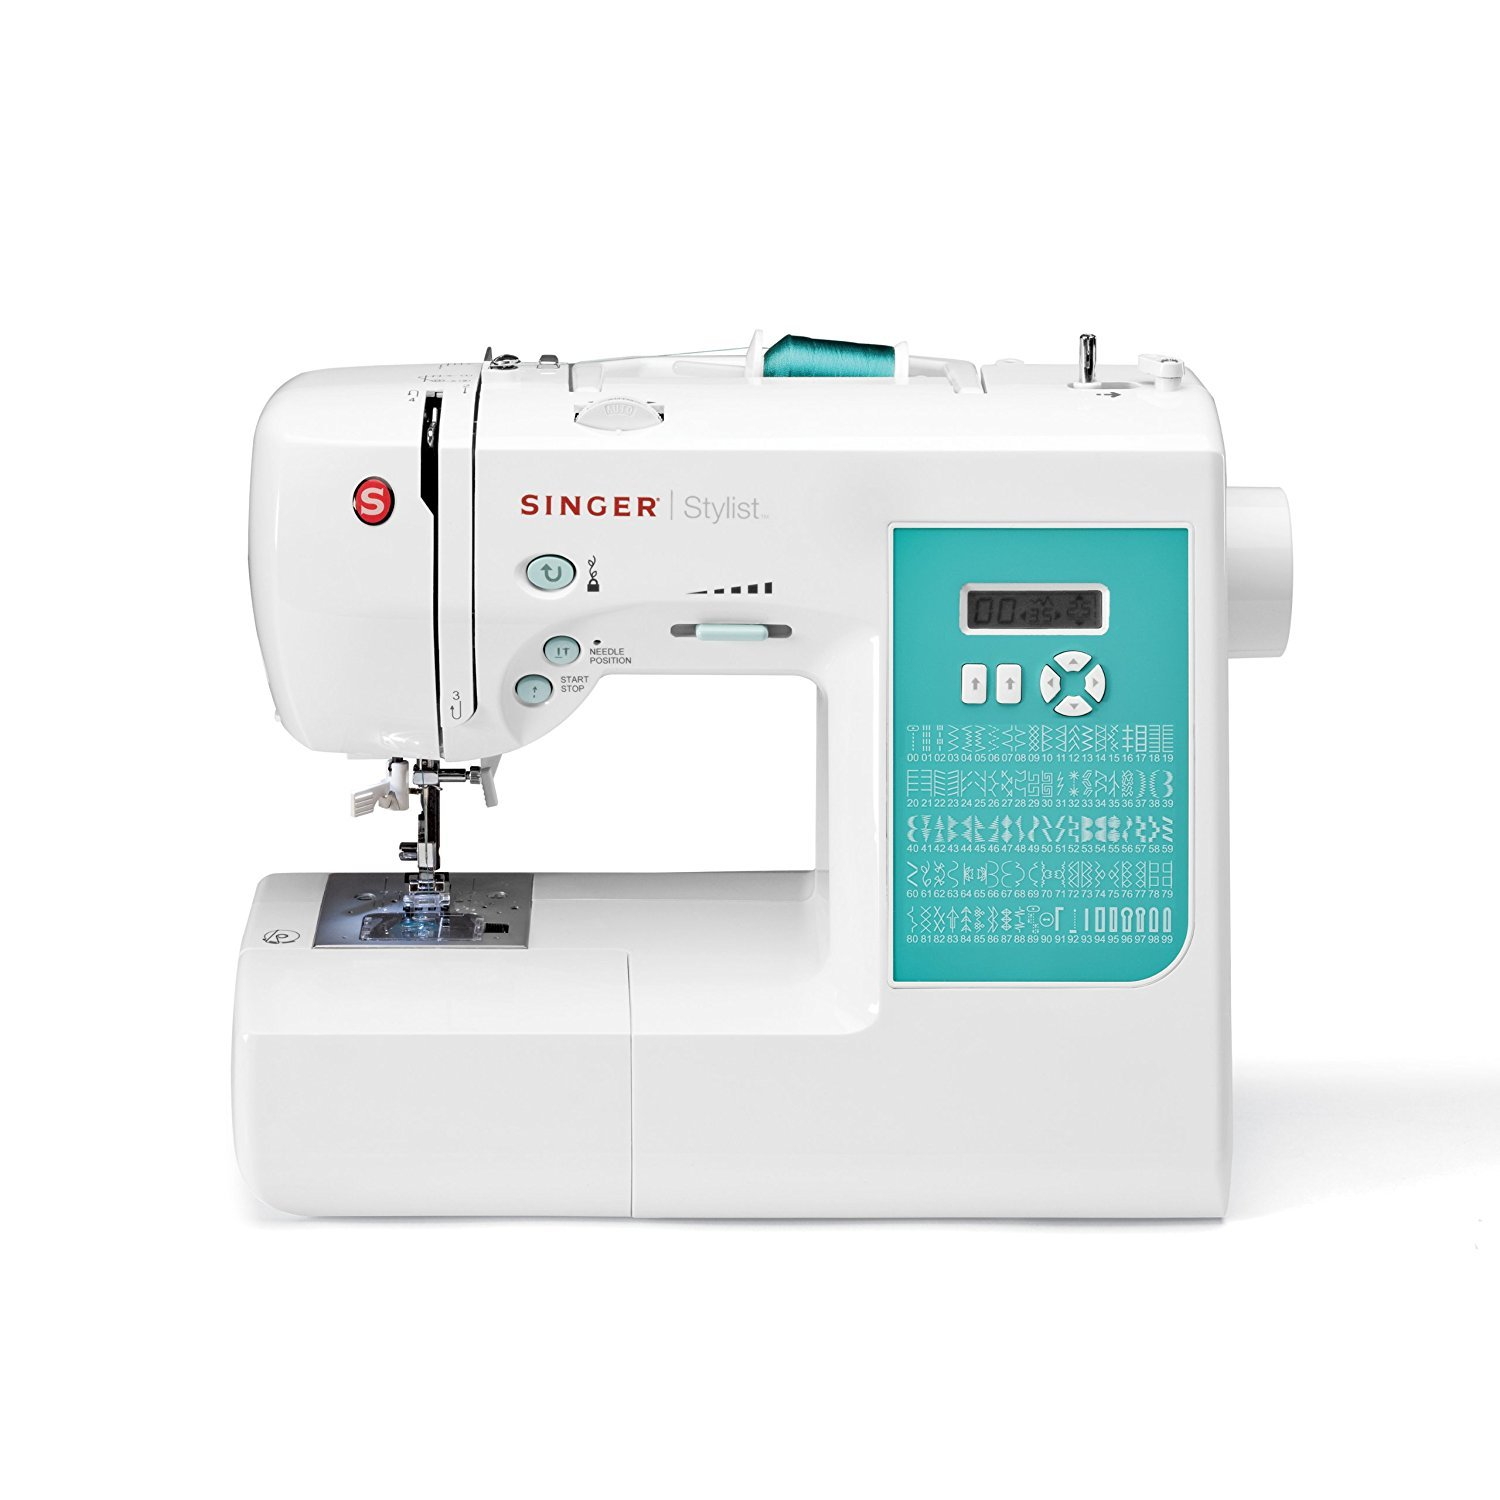 SINGER | 7258 100-Stitch Computerized Sewing Machine with 76 Decorative Stitches, Automatic Needle Threader and Bonus Accessories, Packed with Features and Easy to Use by SINGER